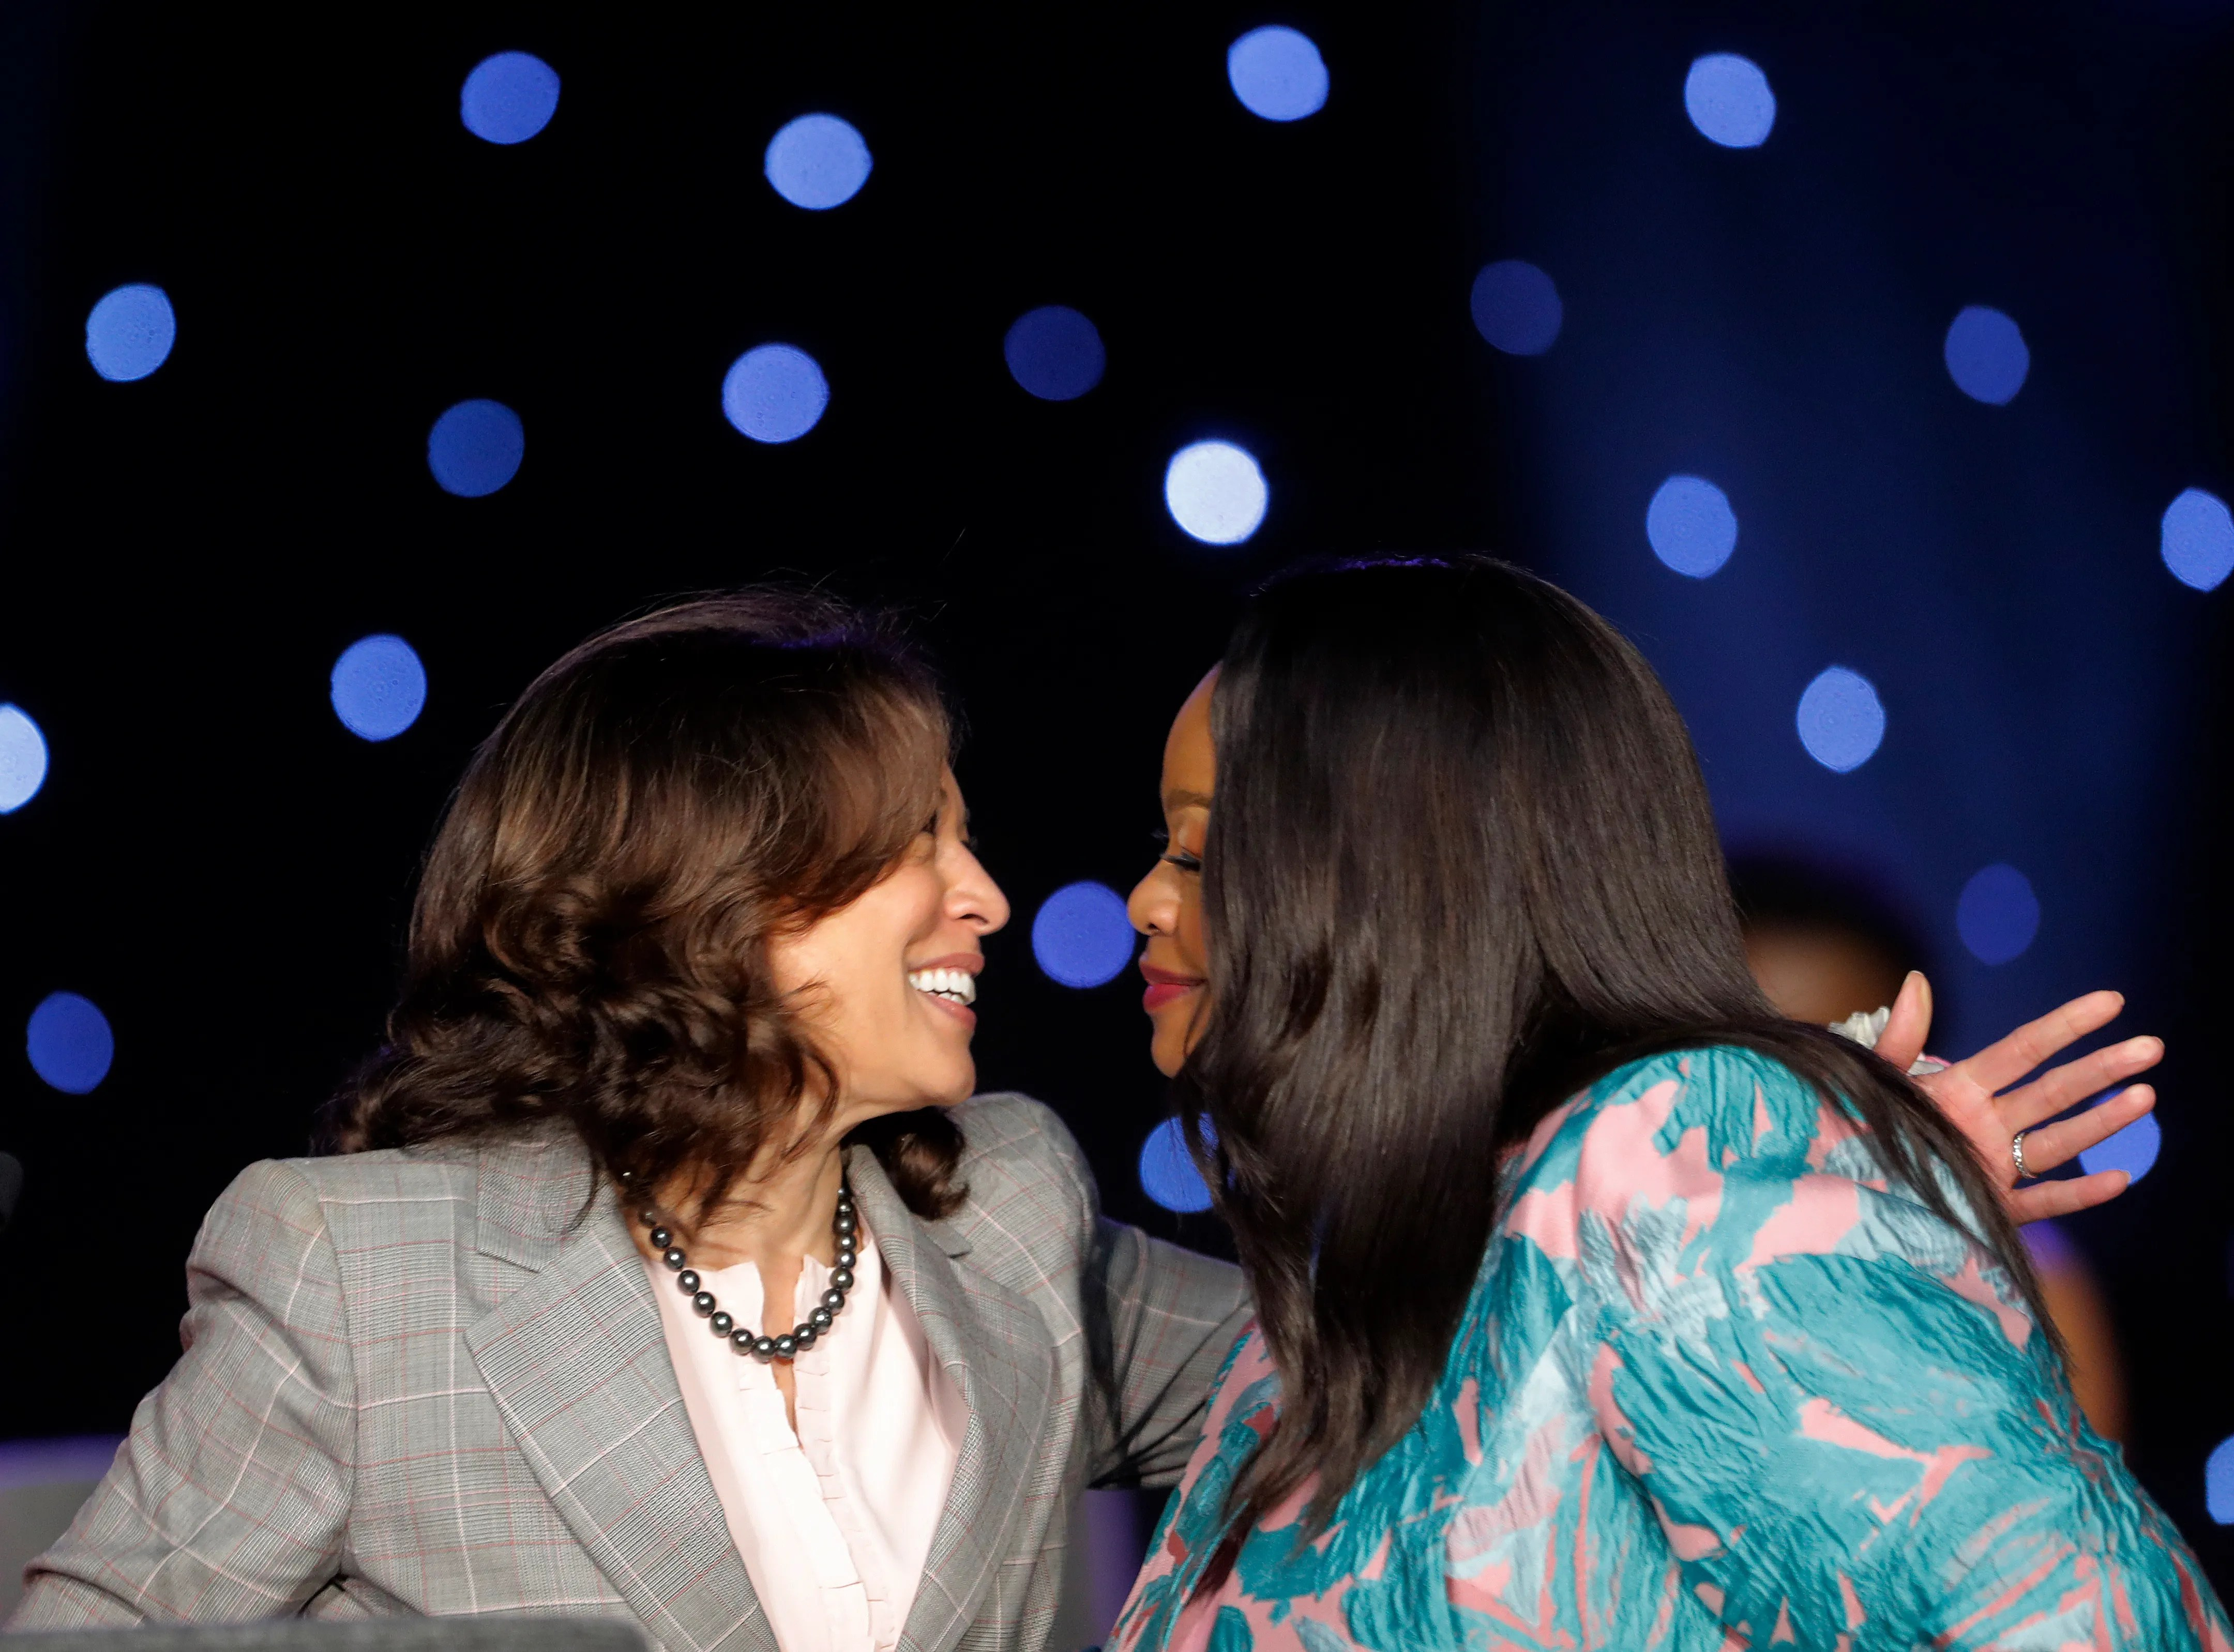 Sen. Kamala Harris, D-Calif., left, is greeted by Alpha Kappa Alpha South Central Regional Director Katina Semien at the sorority's annual conference in New Orleans on April 19, 2019.